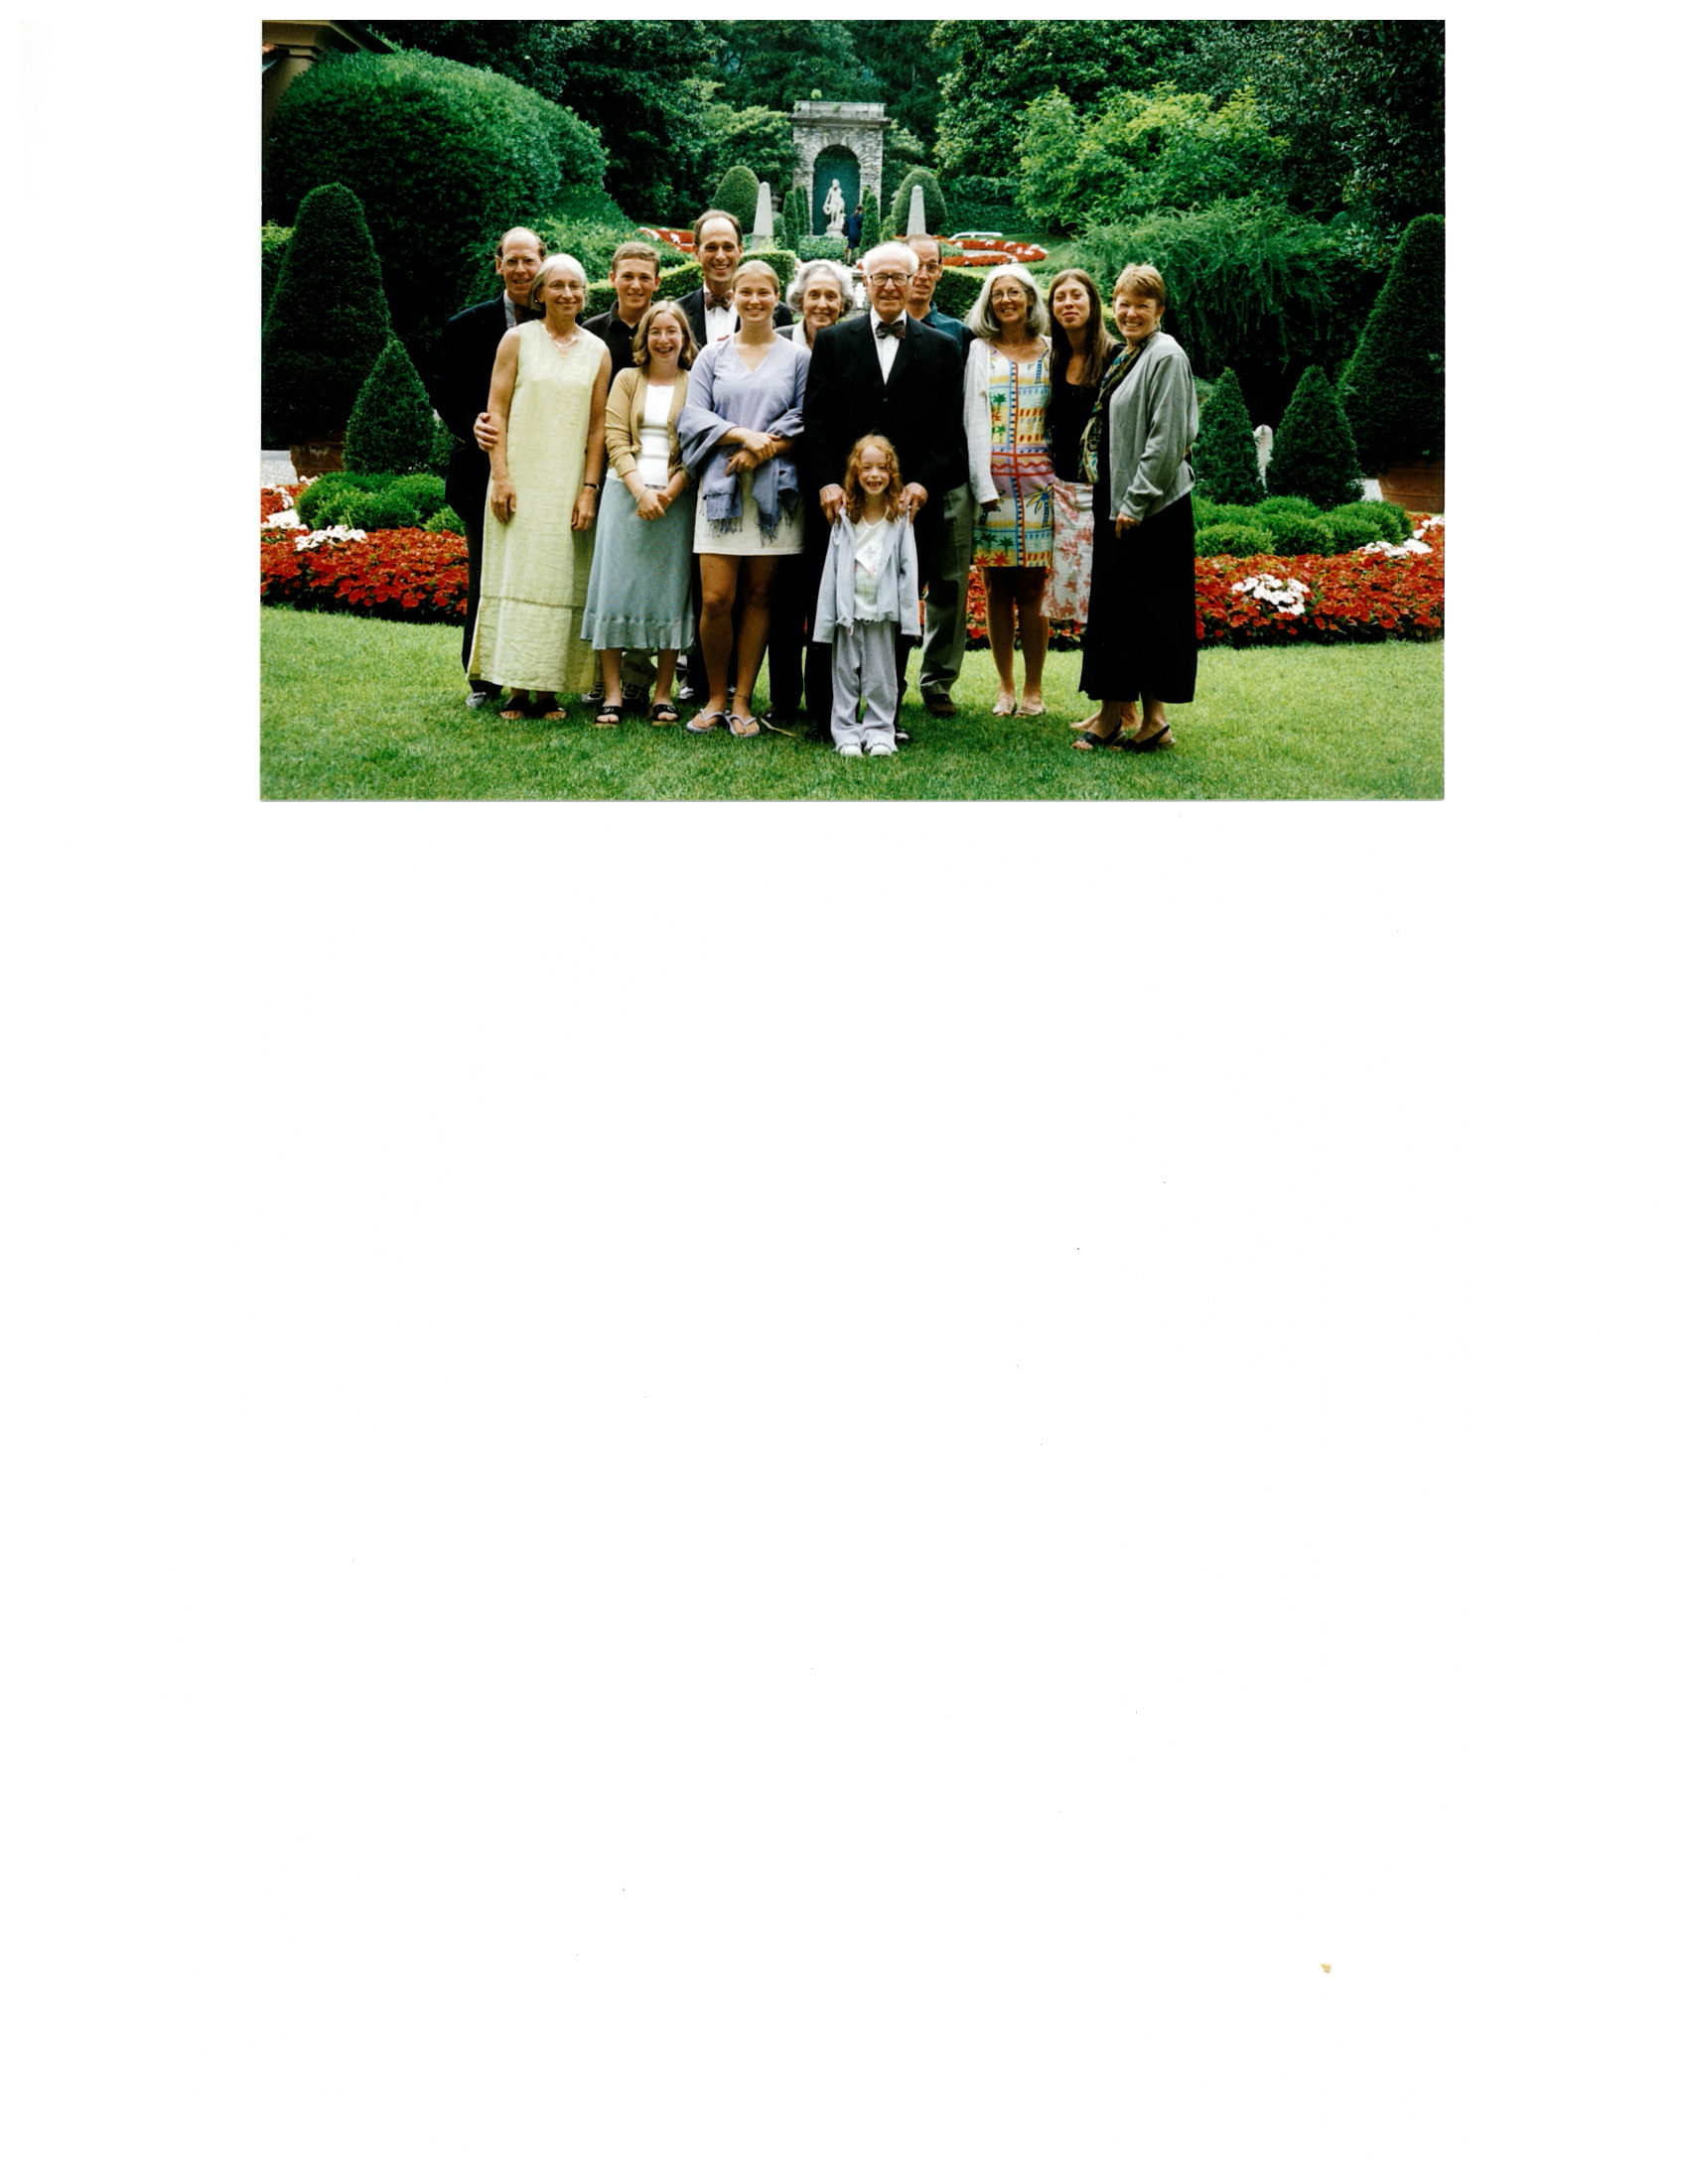 lake como jewish girl personals Adult camps displaying: 1 - 20 kislak caters to jewish single adults and couples age 55 and lake with 350 ft waterslide boys and girls 7-14 coed resident.